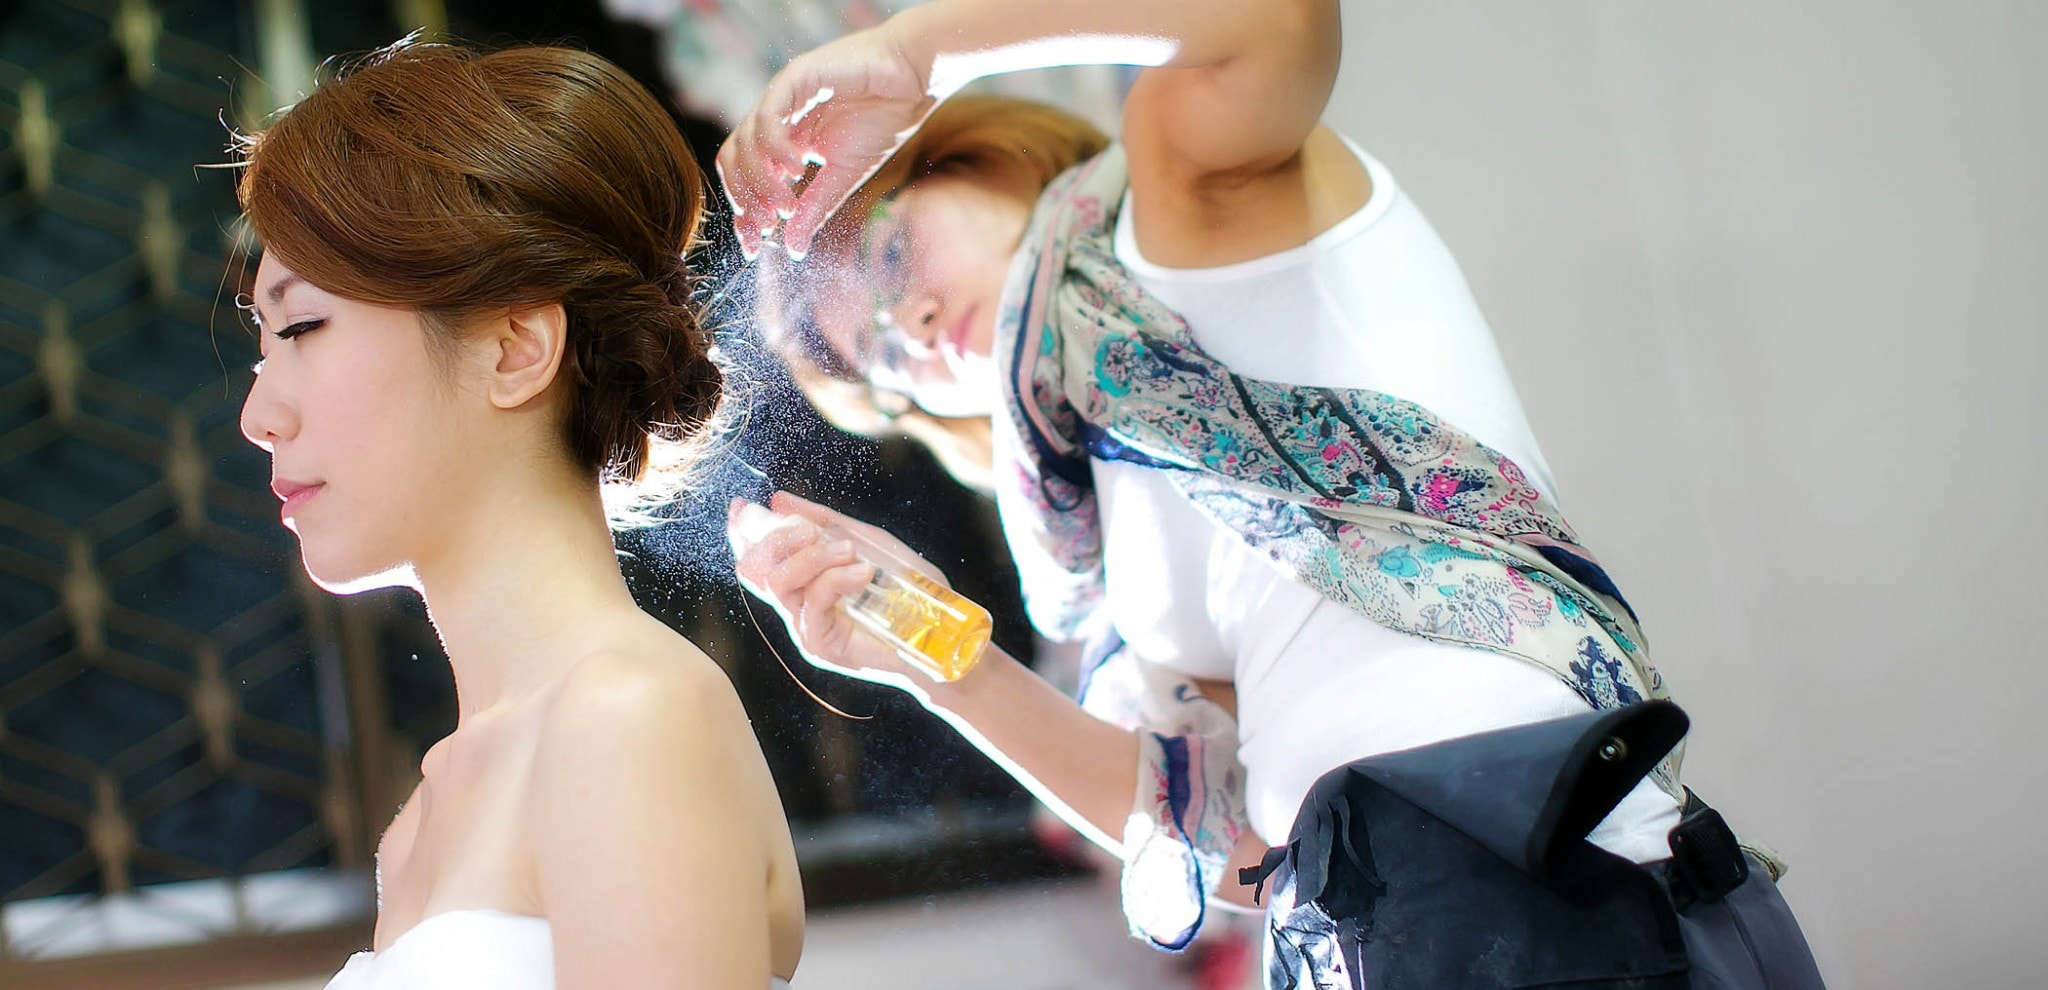 Make-up Artists Wedding Photography Actual Day Package Singapore